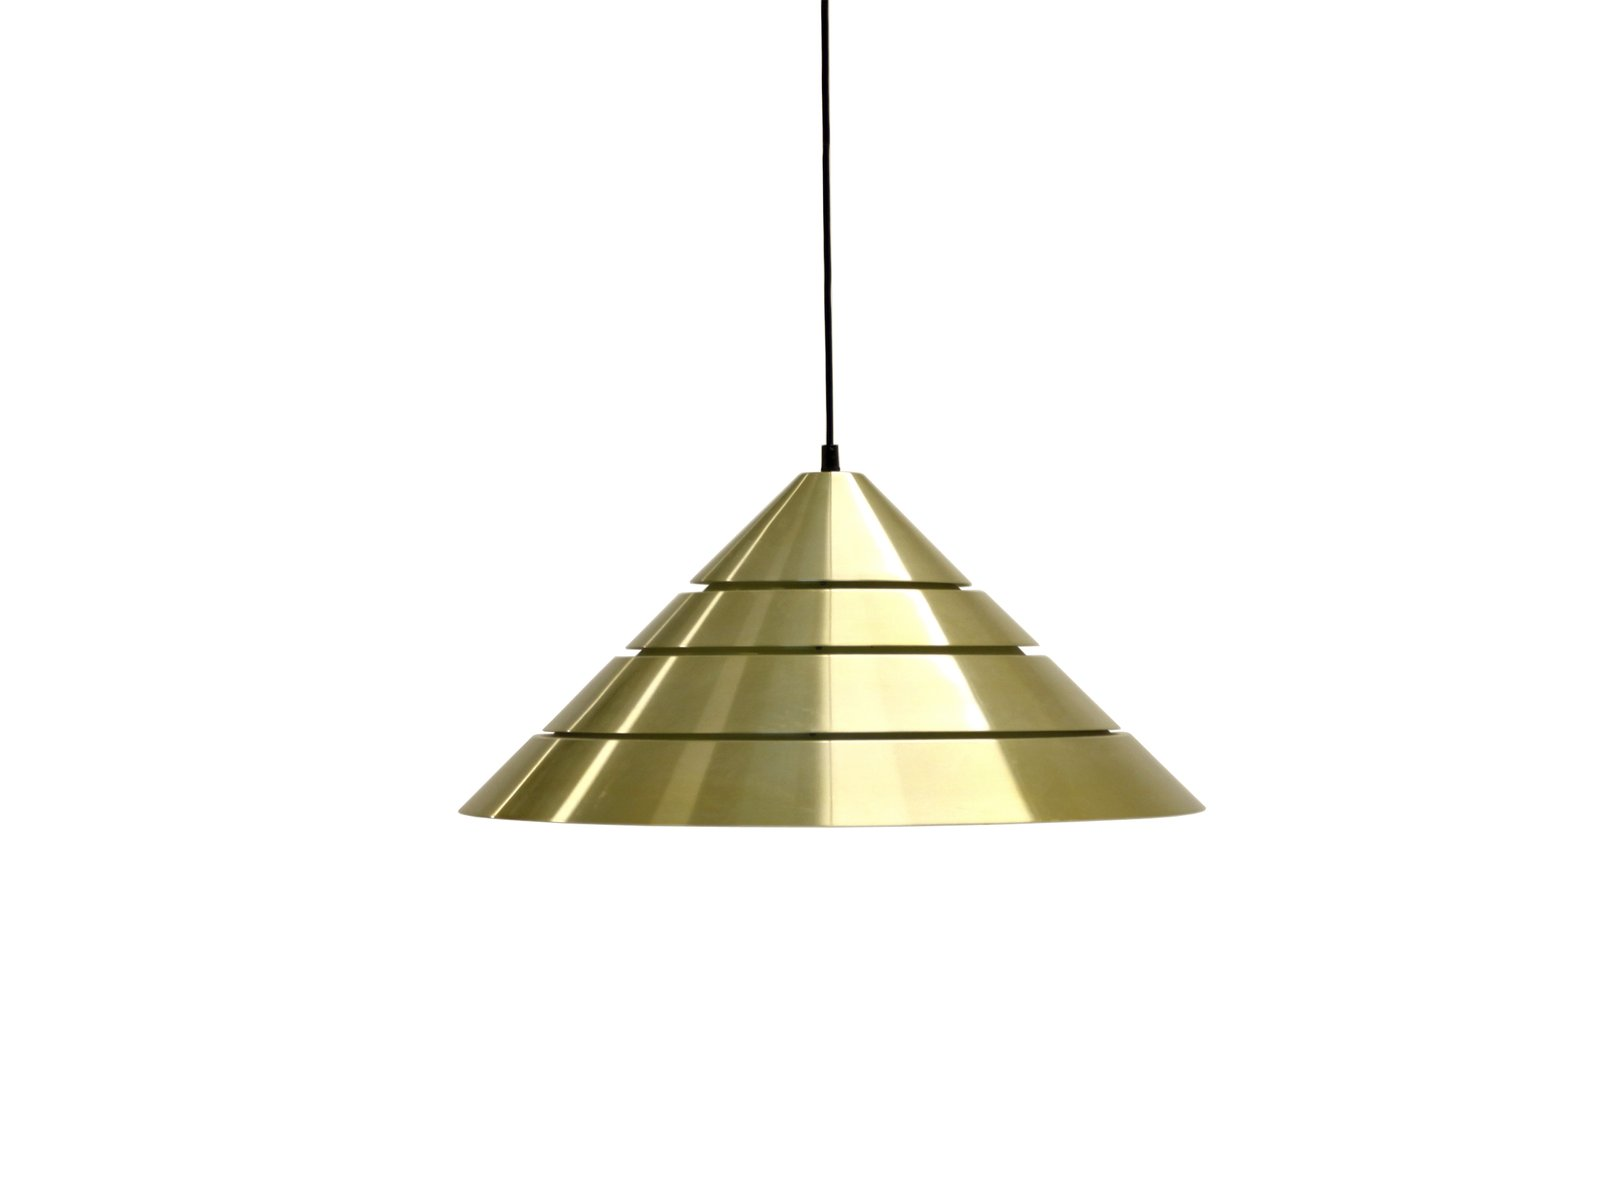 agne pendant by sale pamono hans at lamp jakobsson for cone